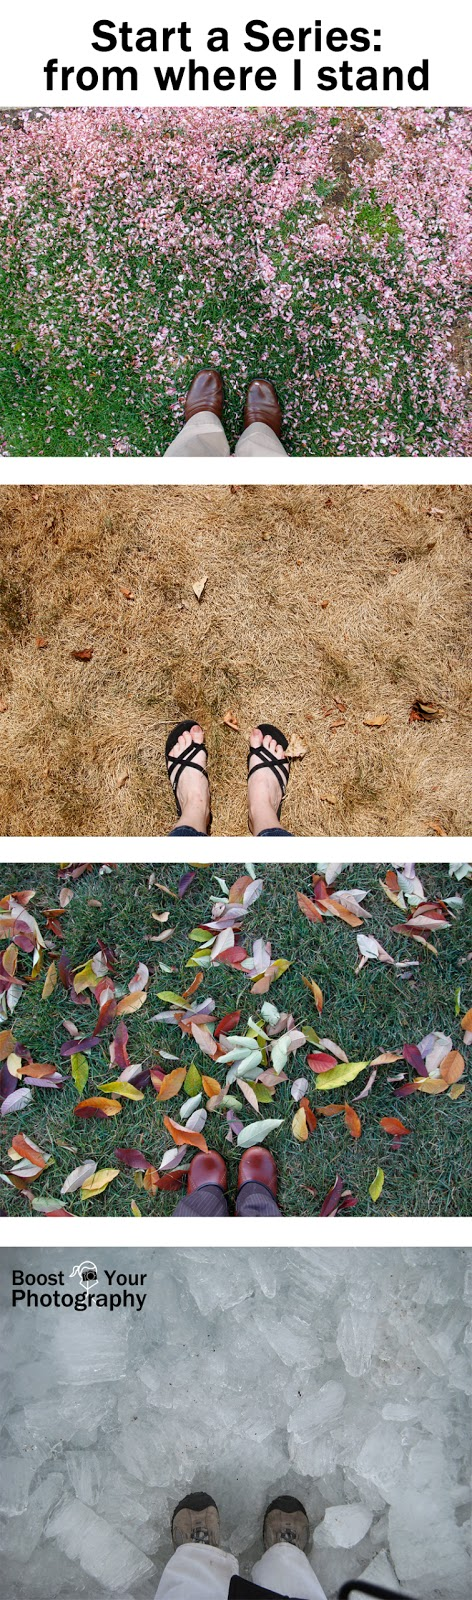 Start a Series: from where I stand | Boost Your Photography